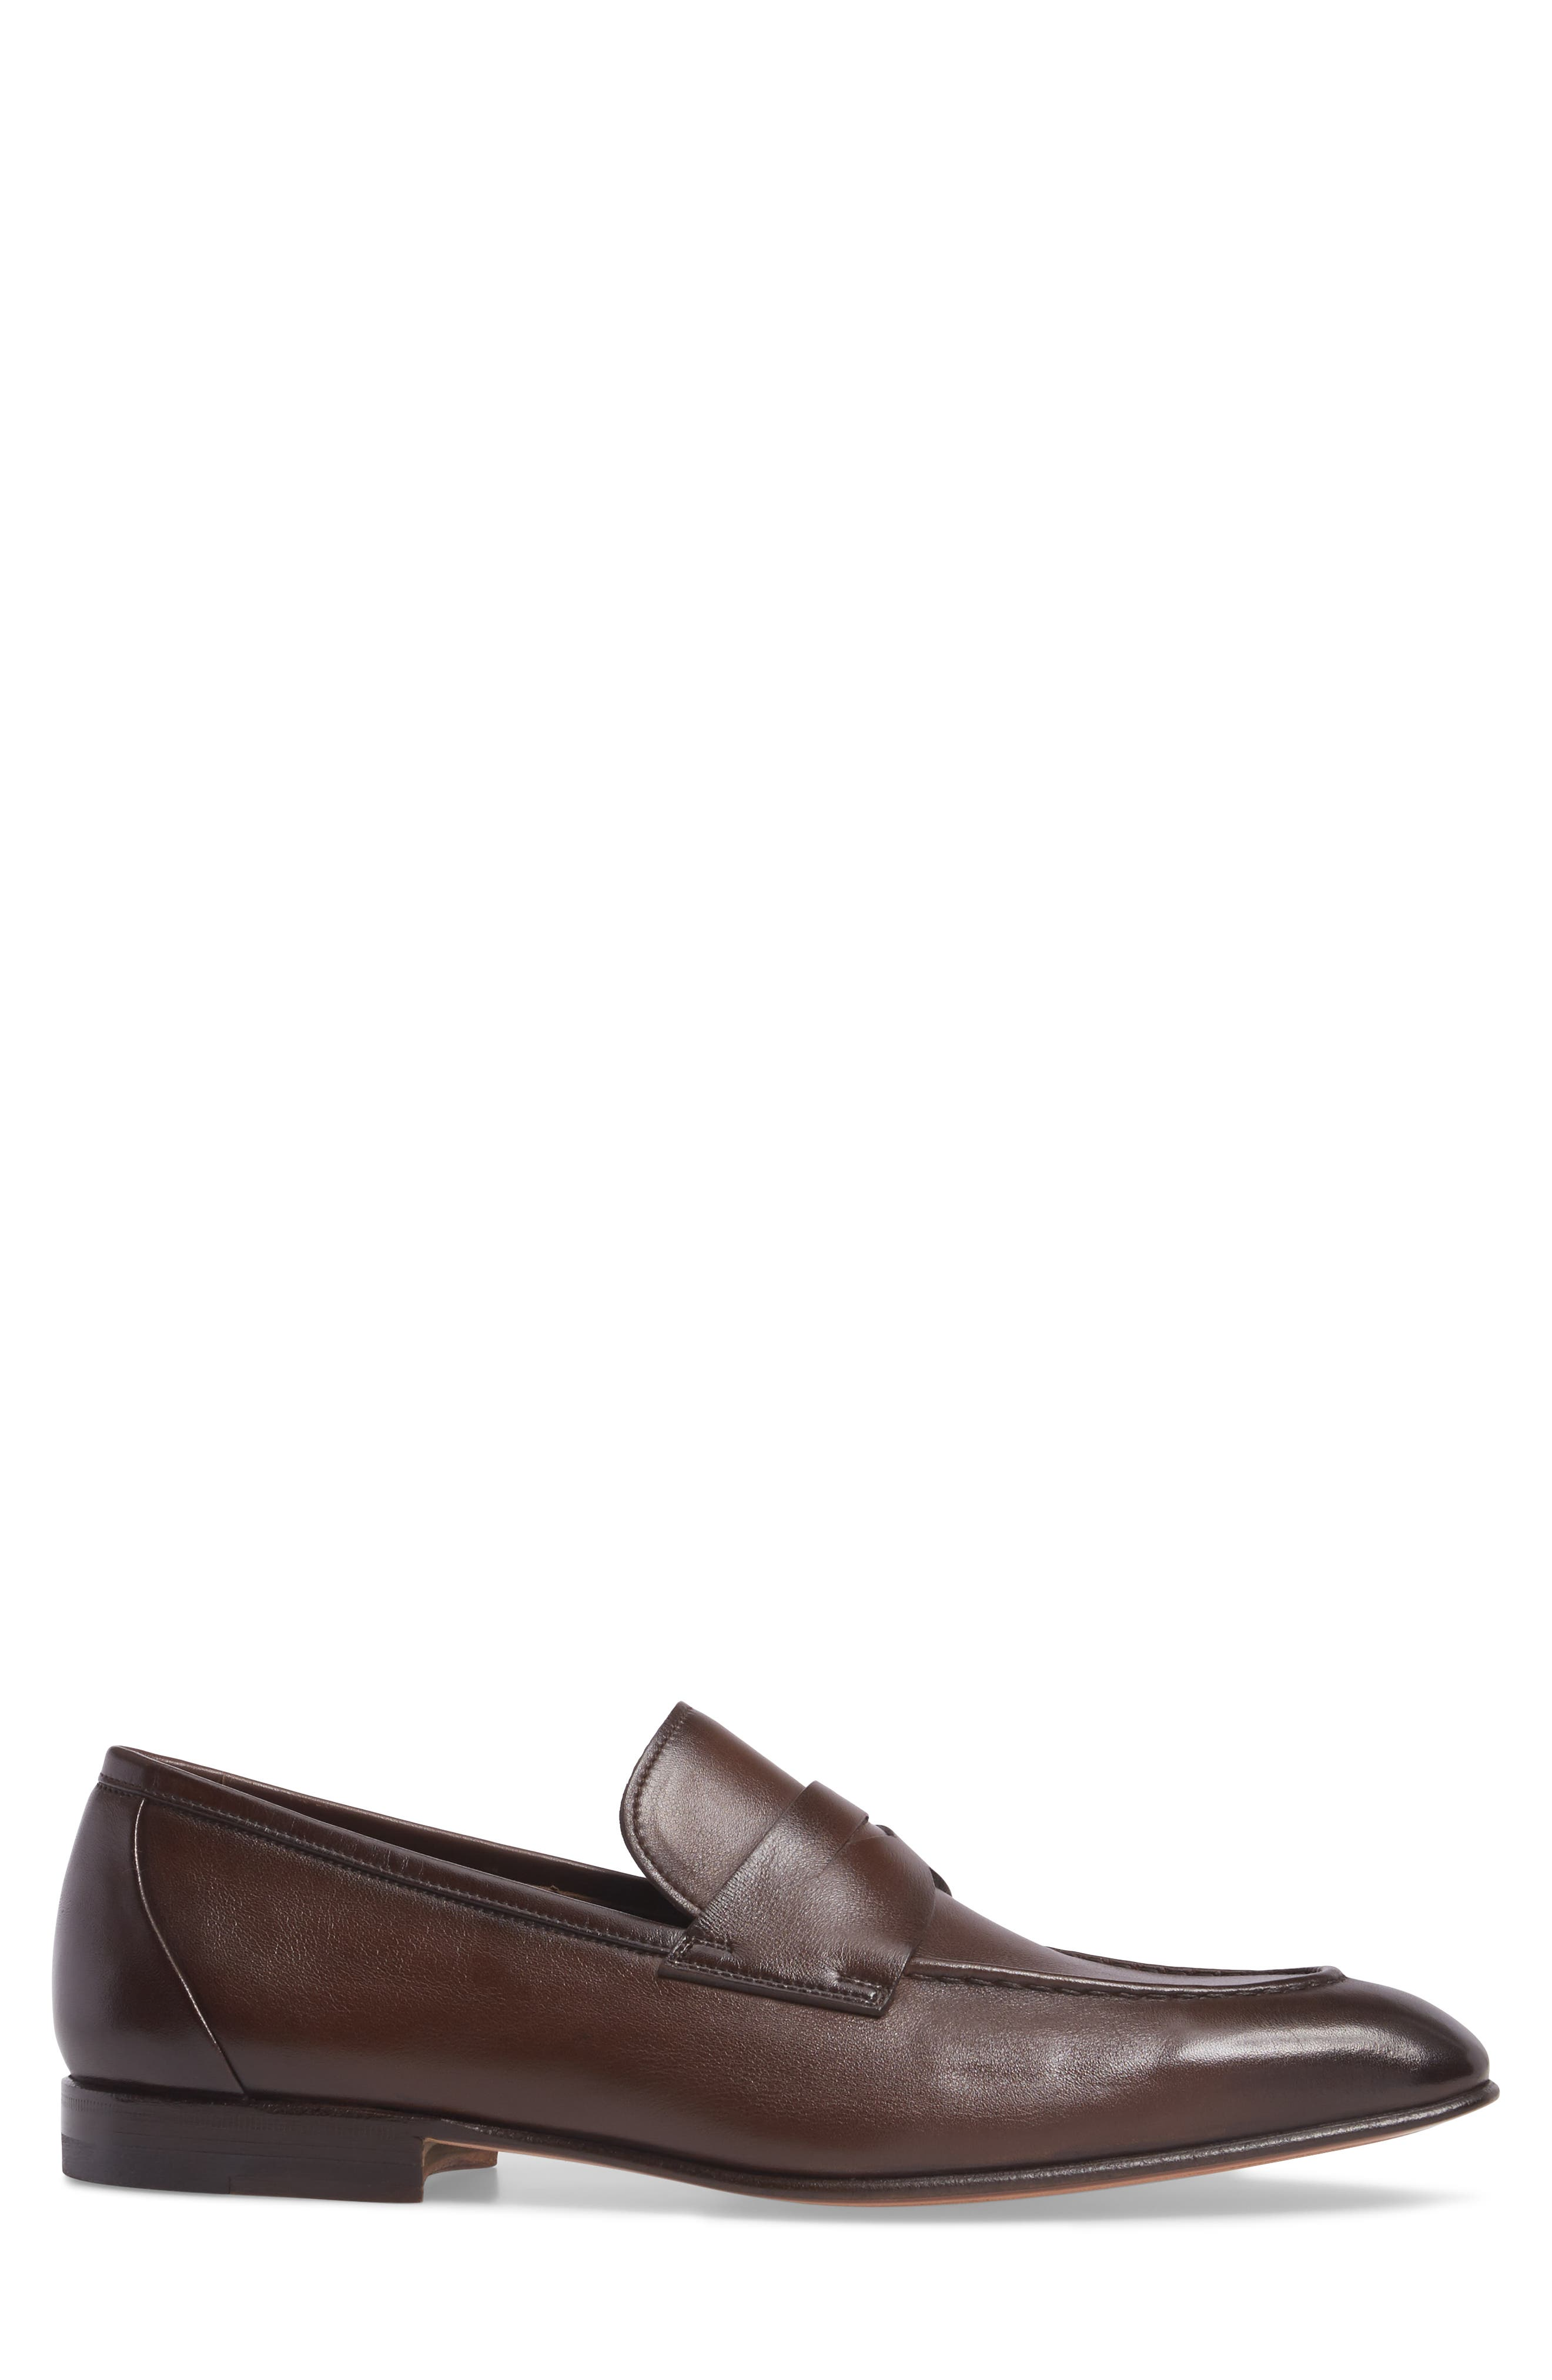 SANTONI, Gannon Penny Loafer, Alternate thumbnail 3, color, BROWN